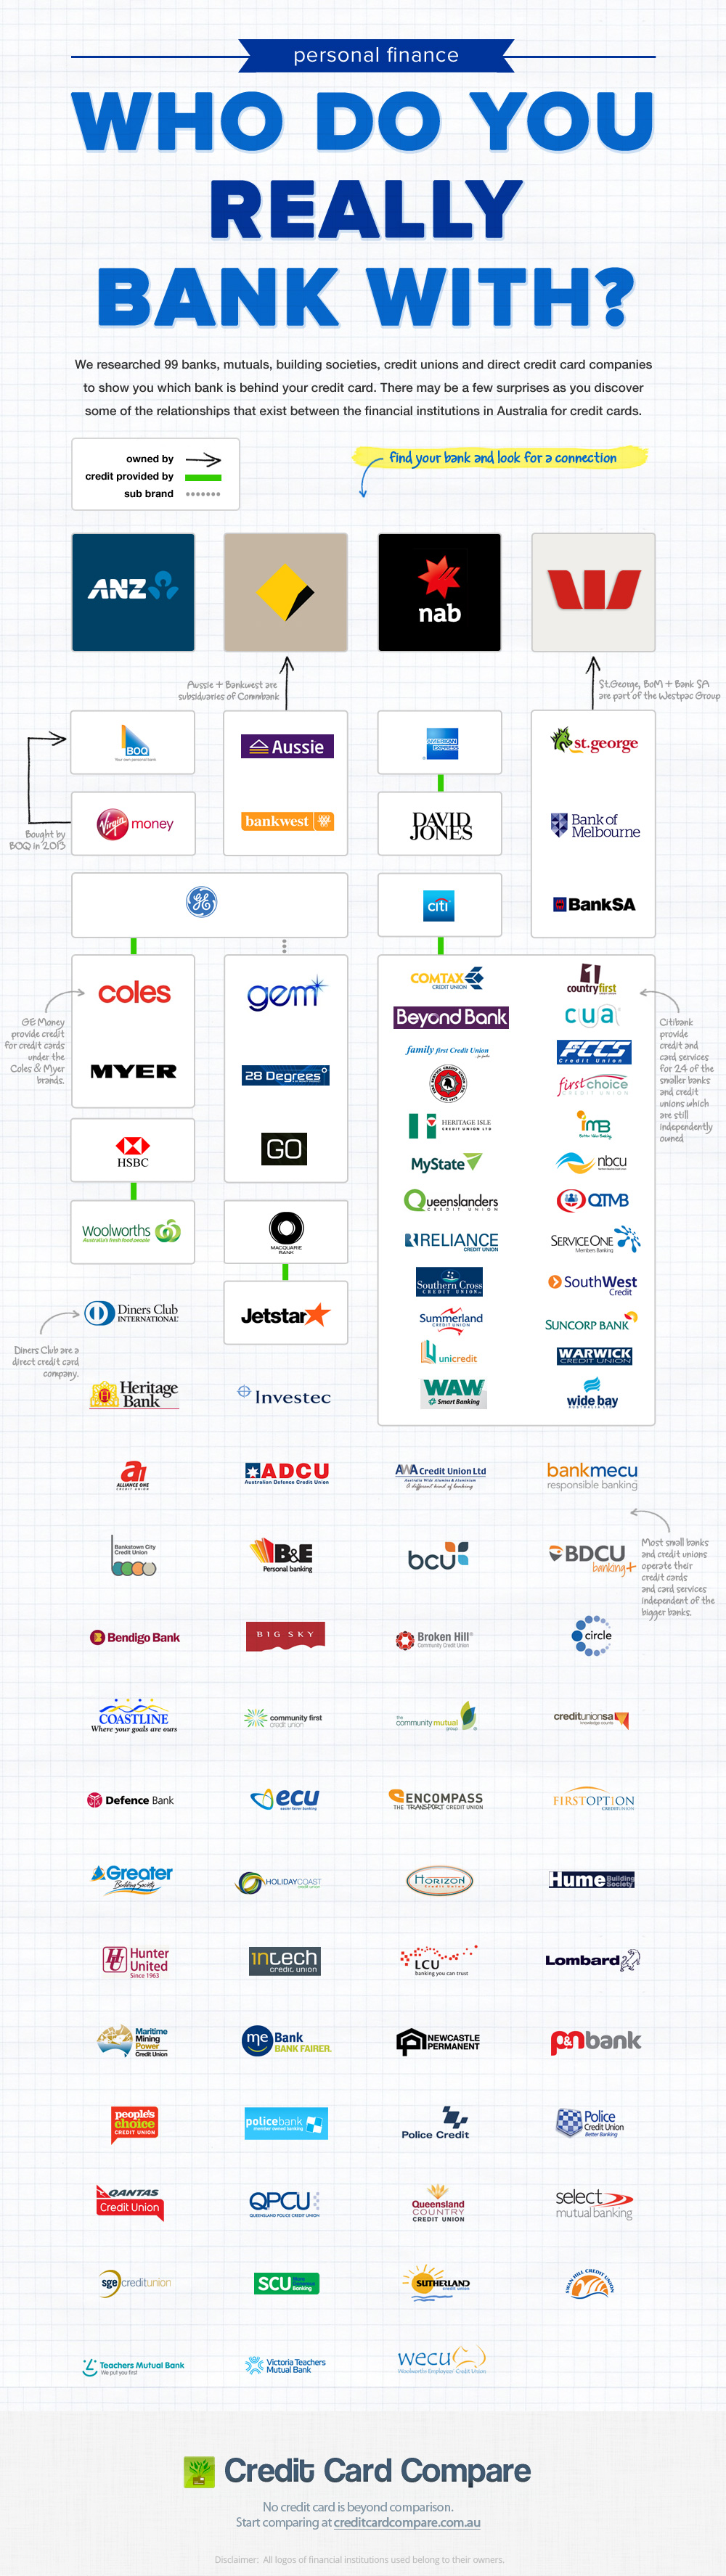 Who Do You Really Bank With? Infographic